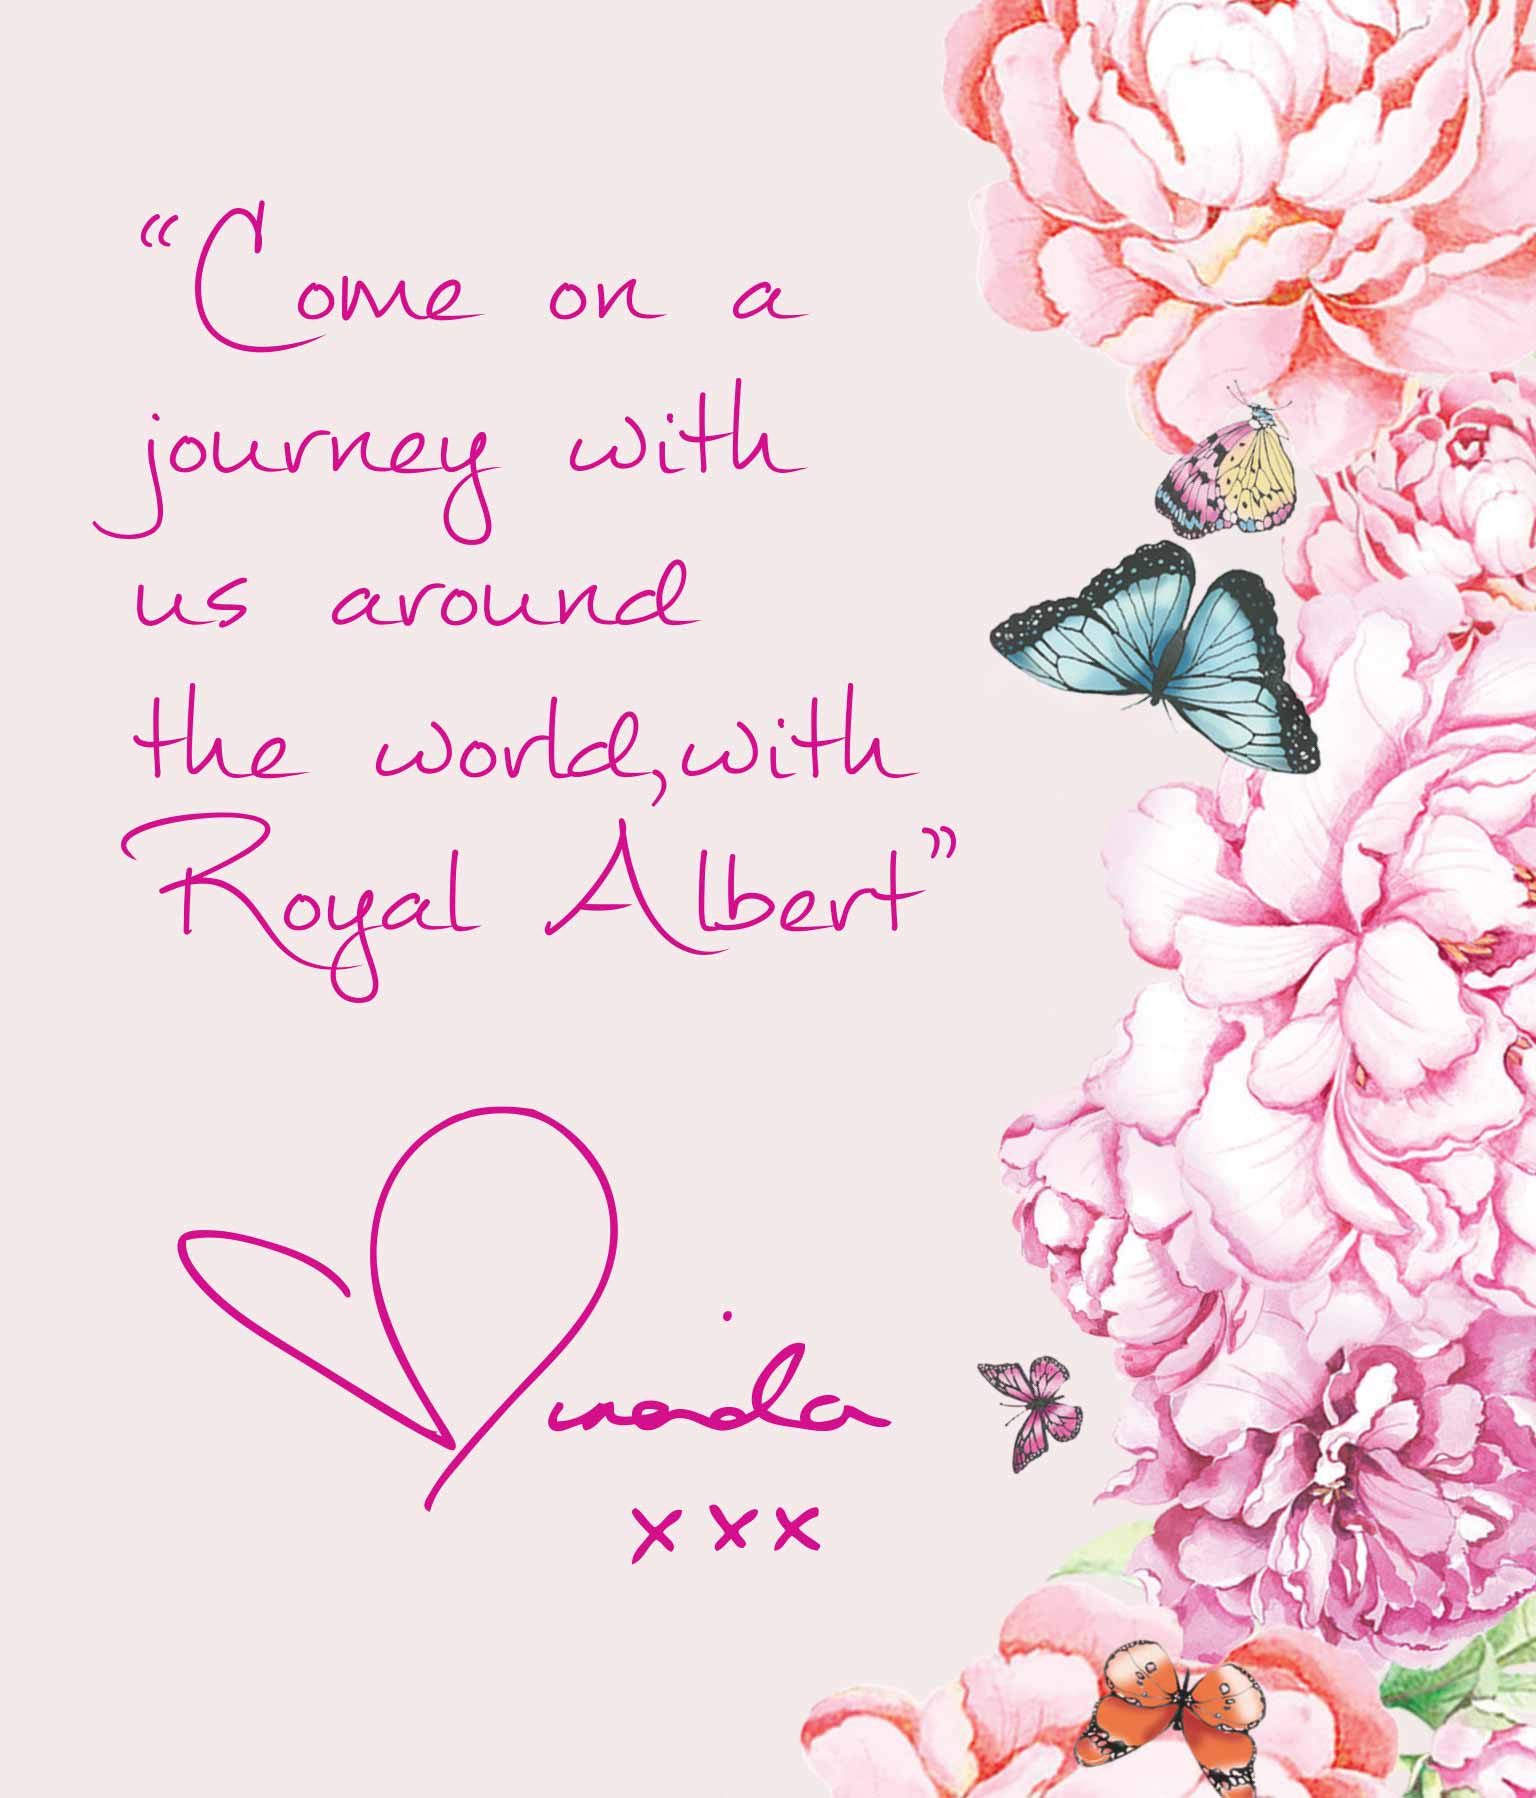 Come on a journey with us around the world, with Royal Albert - Miranda xxx